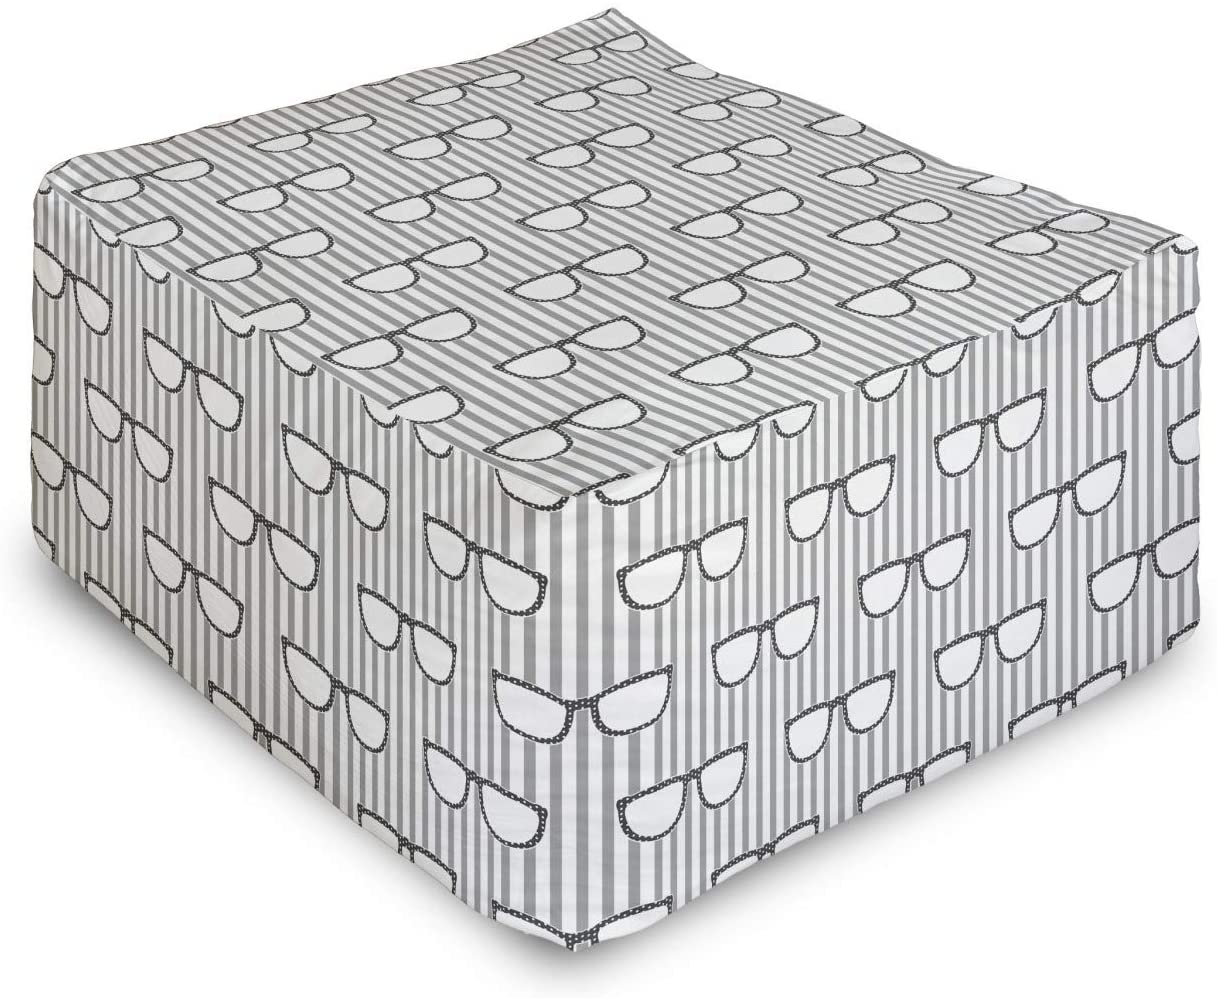 Lunarable Grey Rectangle Pouf, Groovy Popular Hipster Glass on Vertical Stripe Background Nerd Eyes Artwork, Under Desk Foot Stool for Living Room Office Ottoman with Cover, 25